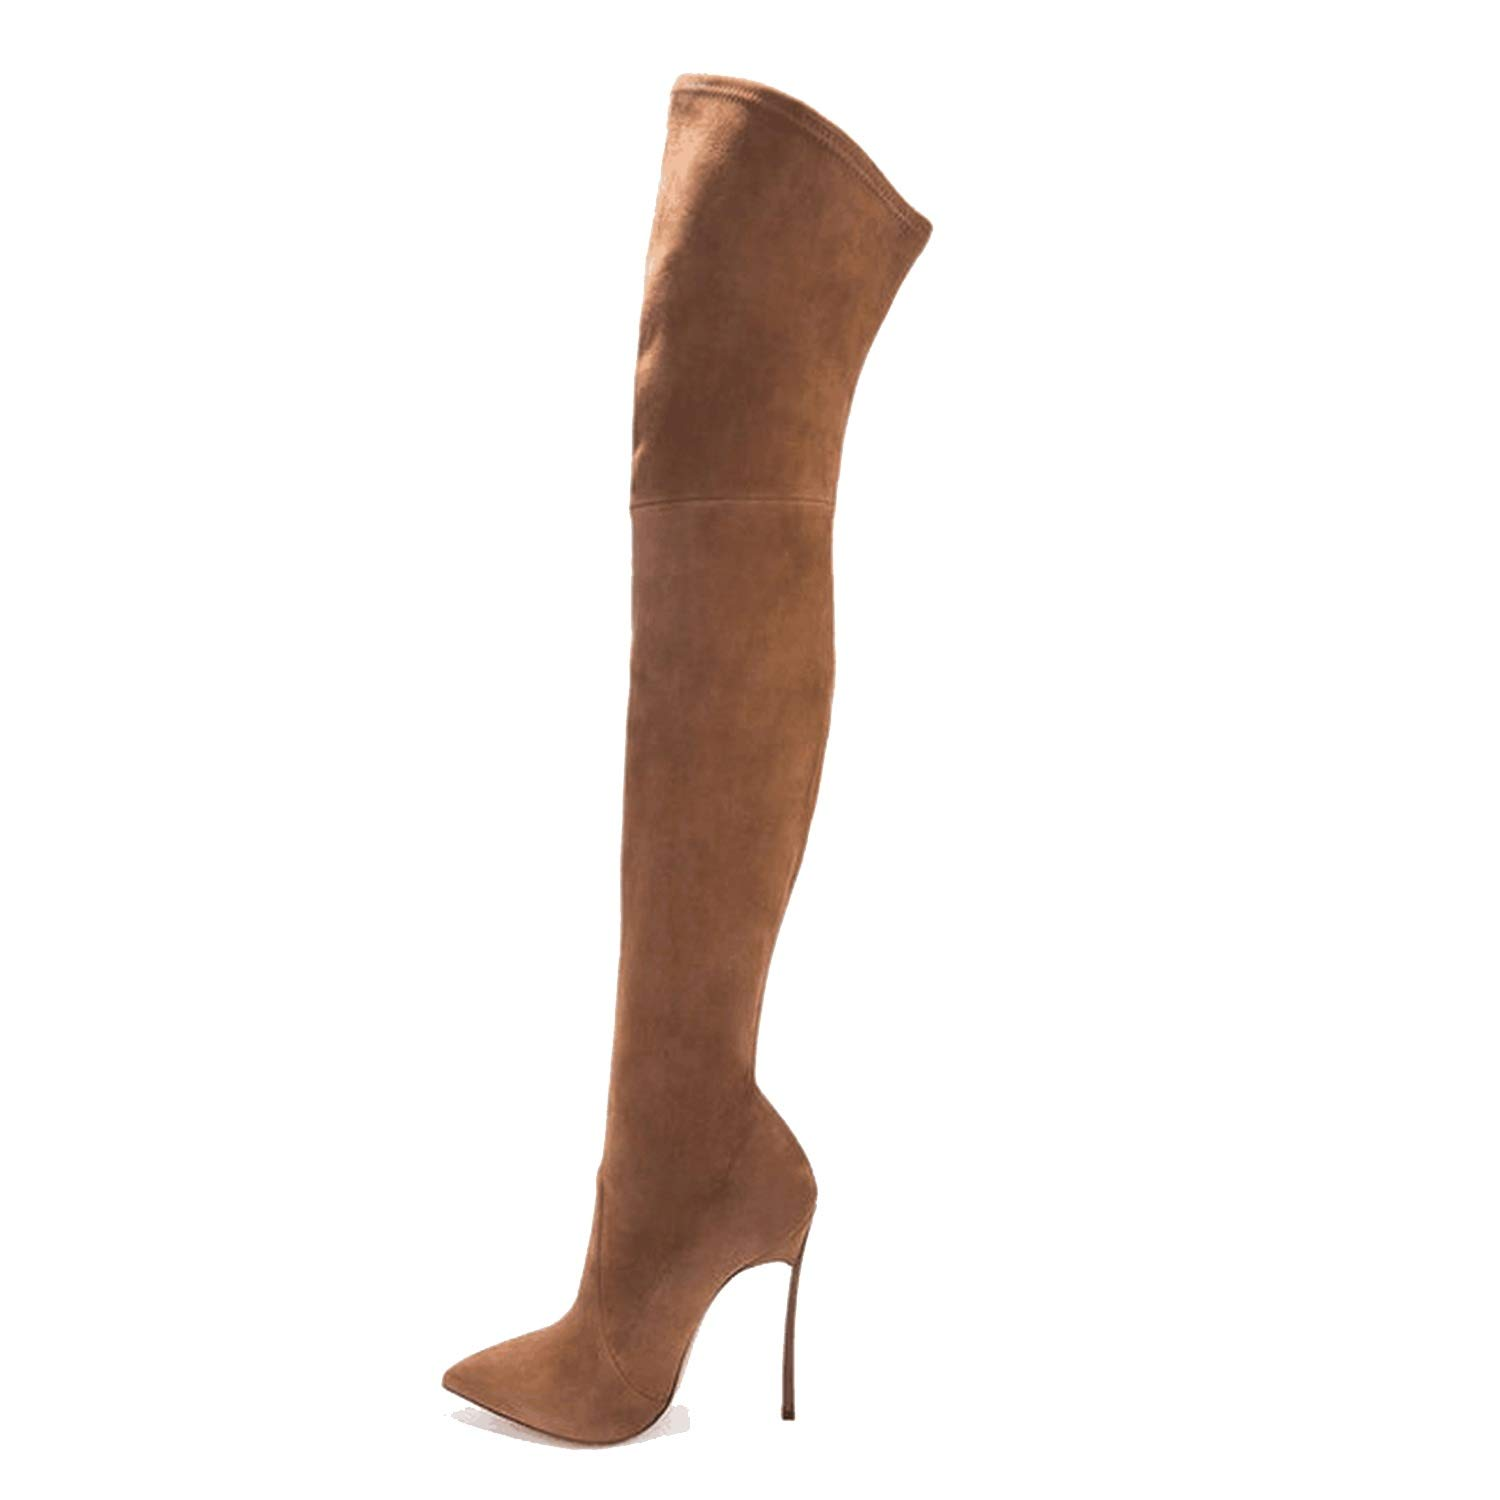 loveinfinite 2018 Boots Boots Long Pointed Leather Elastic PU Repair Legs Knee Boots Women Shoes